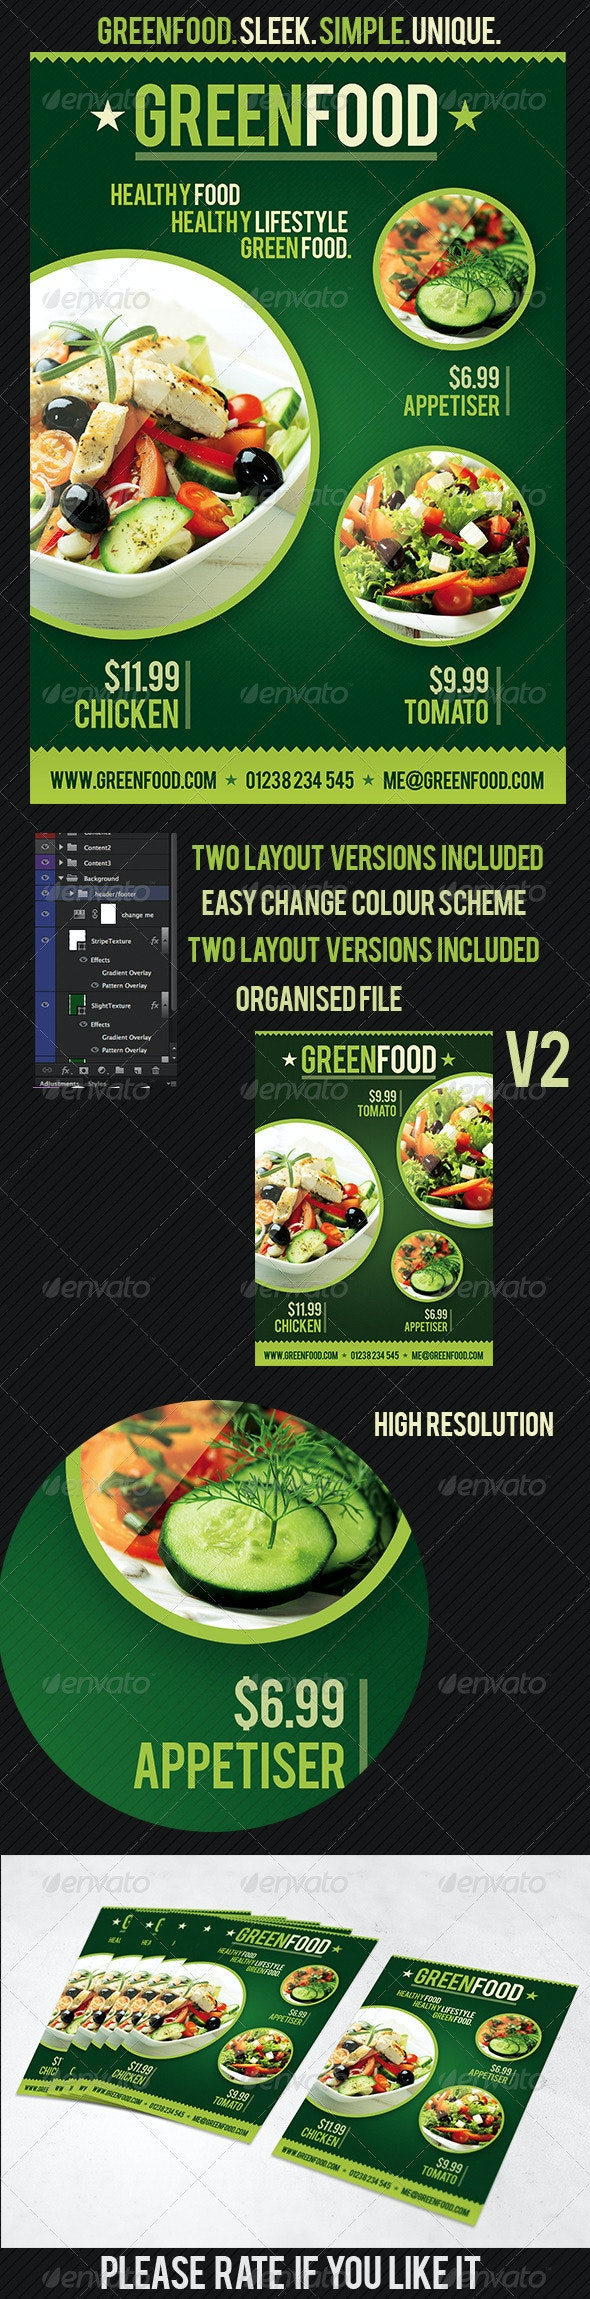 Health Food Flyer Template | GreenFood - Restaurant Flyers